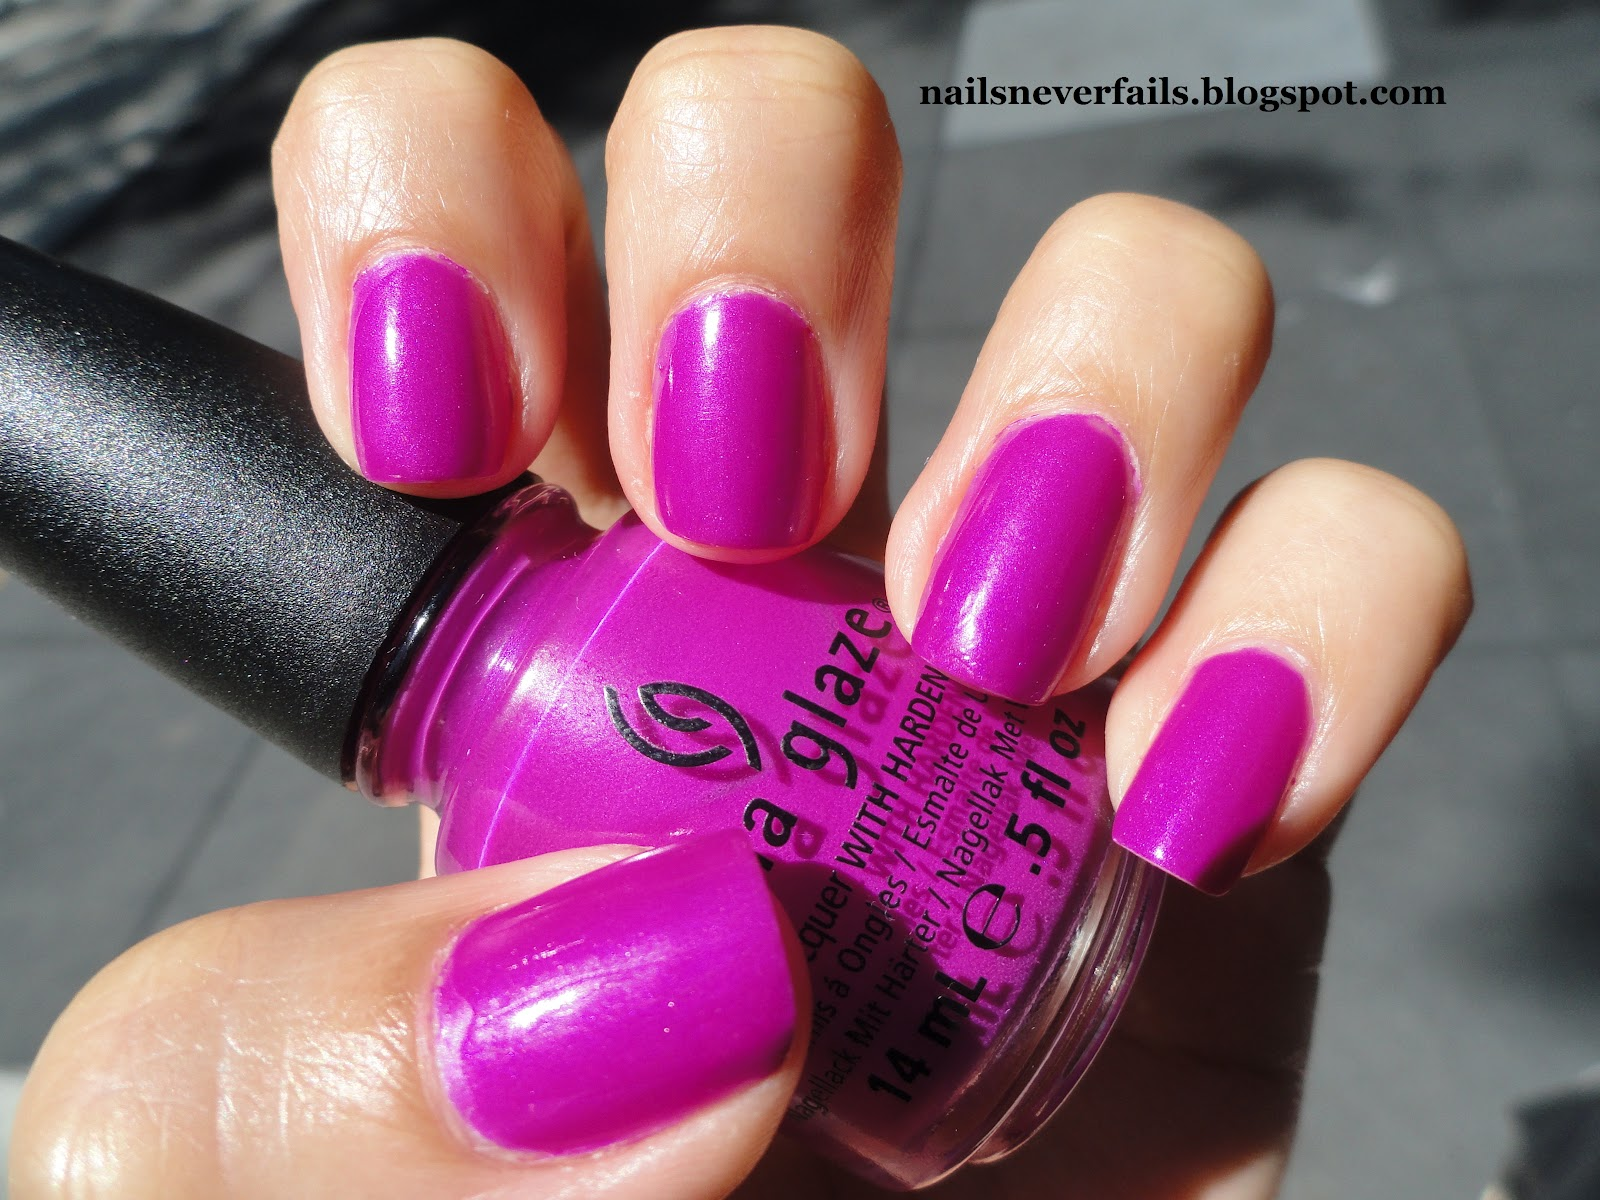 Nails Never Fails: NOTD and TOTD China Glaze Beach Cruise-r